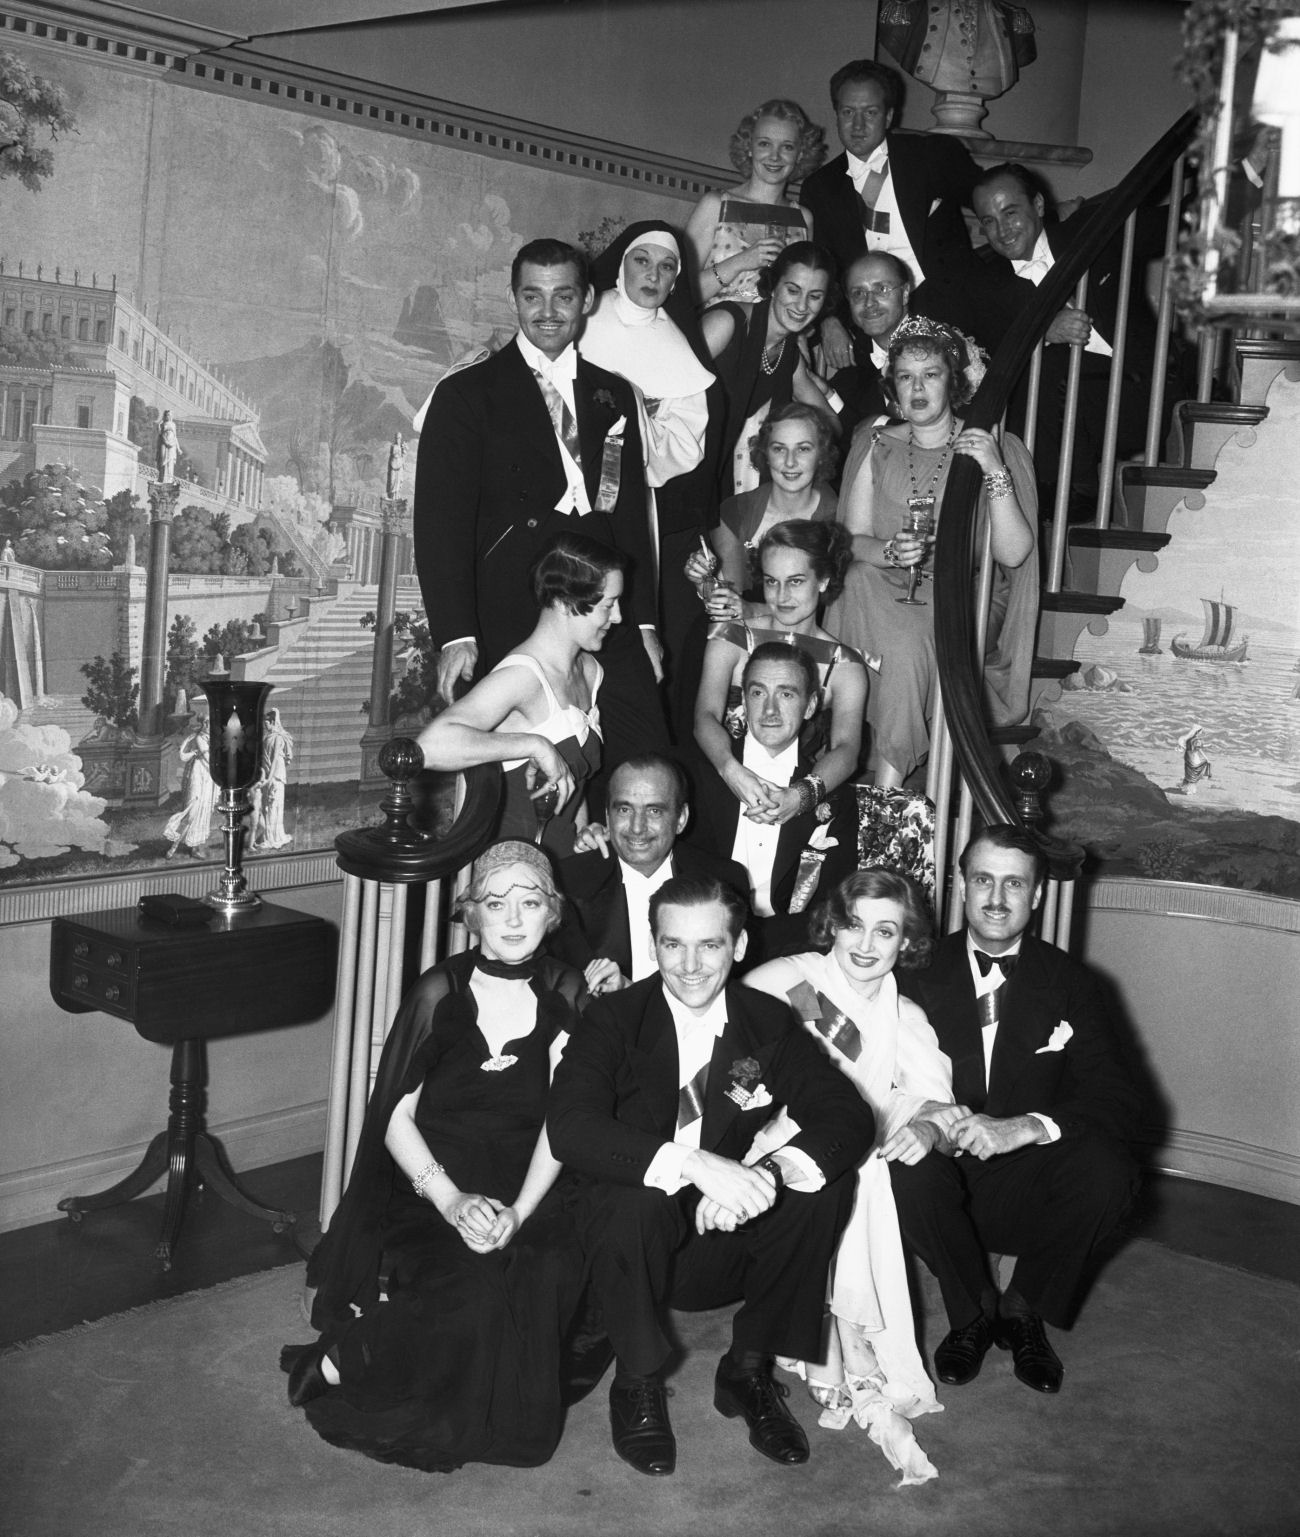 Clifton Webb with Marion Davies,Douglas Fairbanks, Jr., Douglas Fairbanks, Sr.,Clark Gable,Carole Lombard